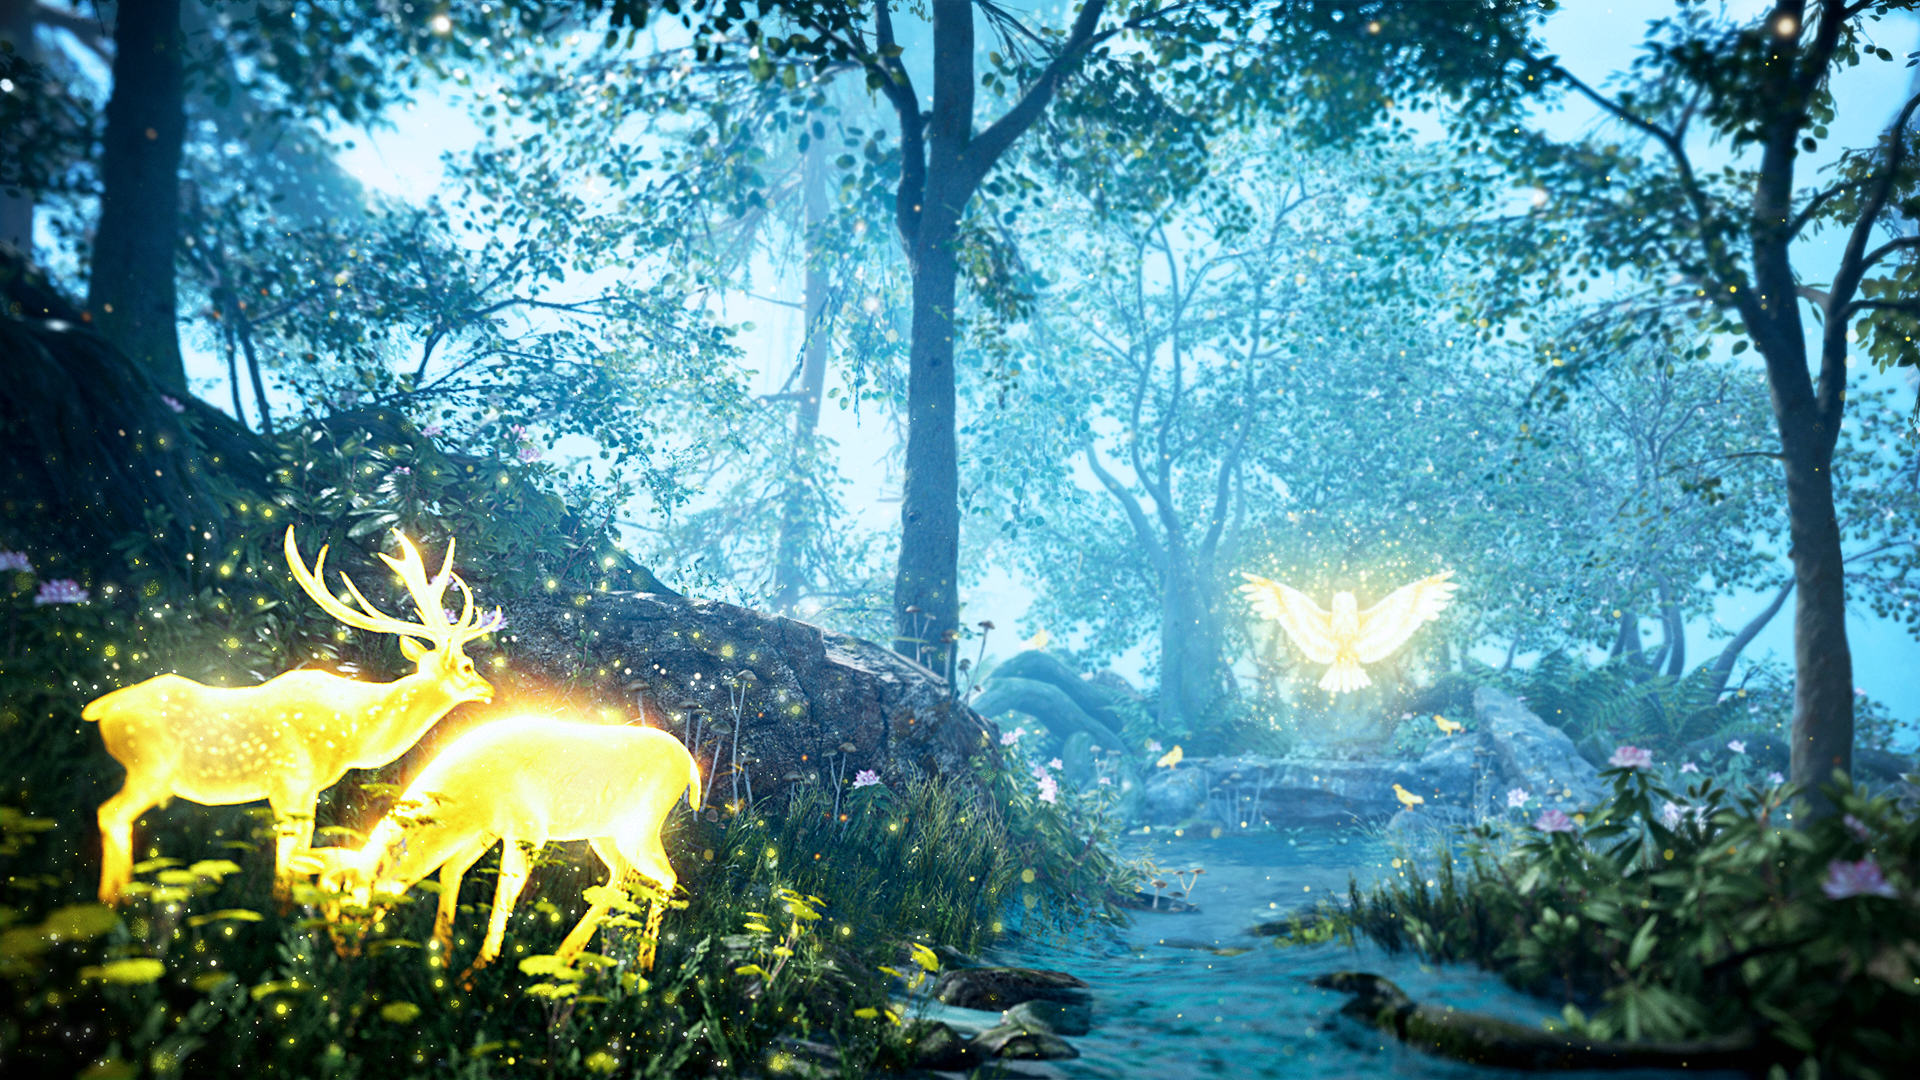 Far Cry Primal Is Shameless Pre Historic Fun, If A Little Shallow FCP 03 Owl Vision Screenshots PREVIEW PR 160126 6pm CET 1453716680